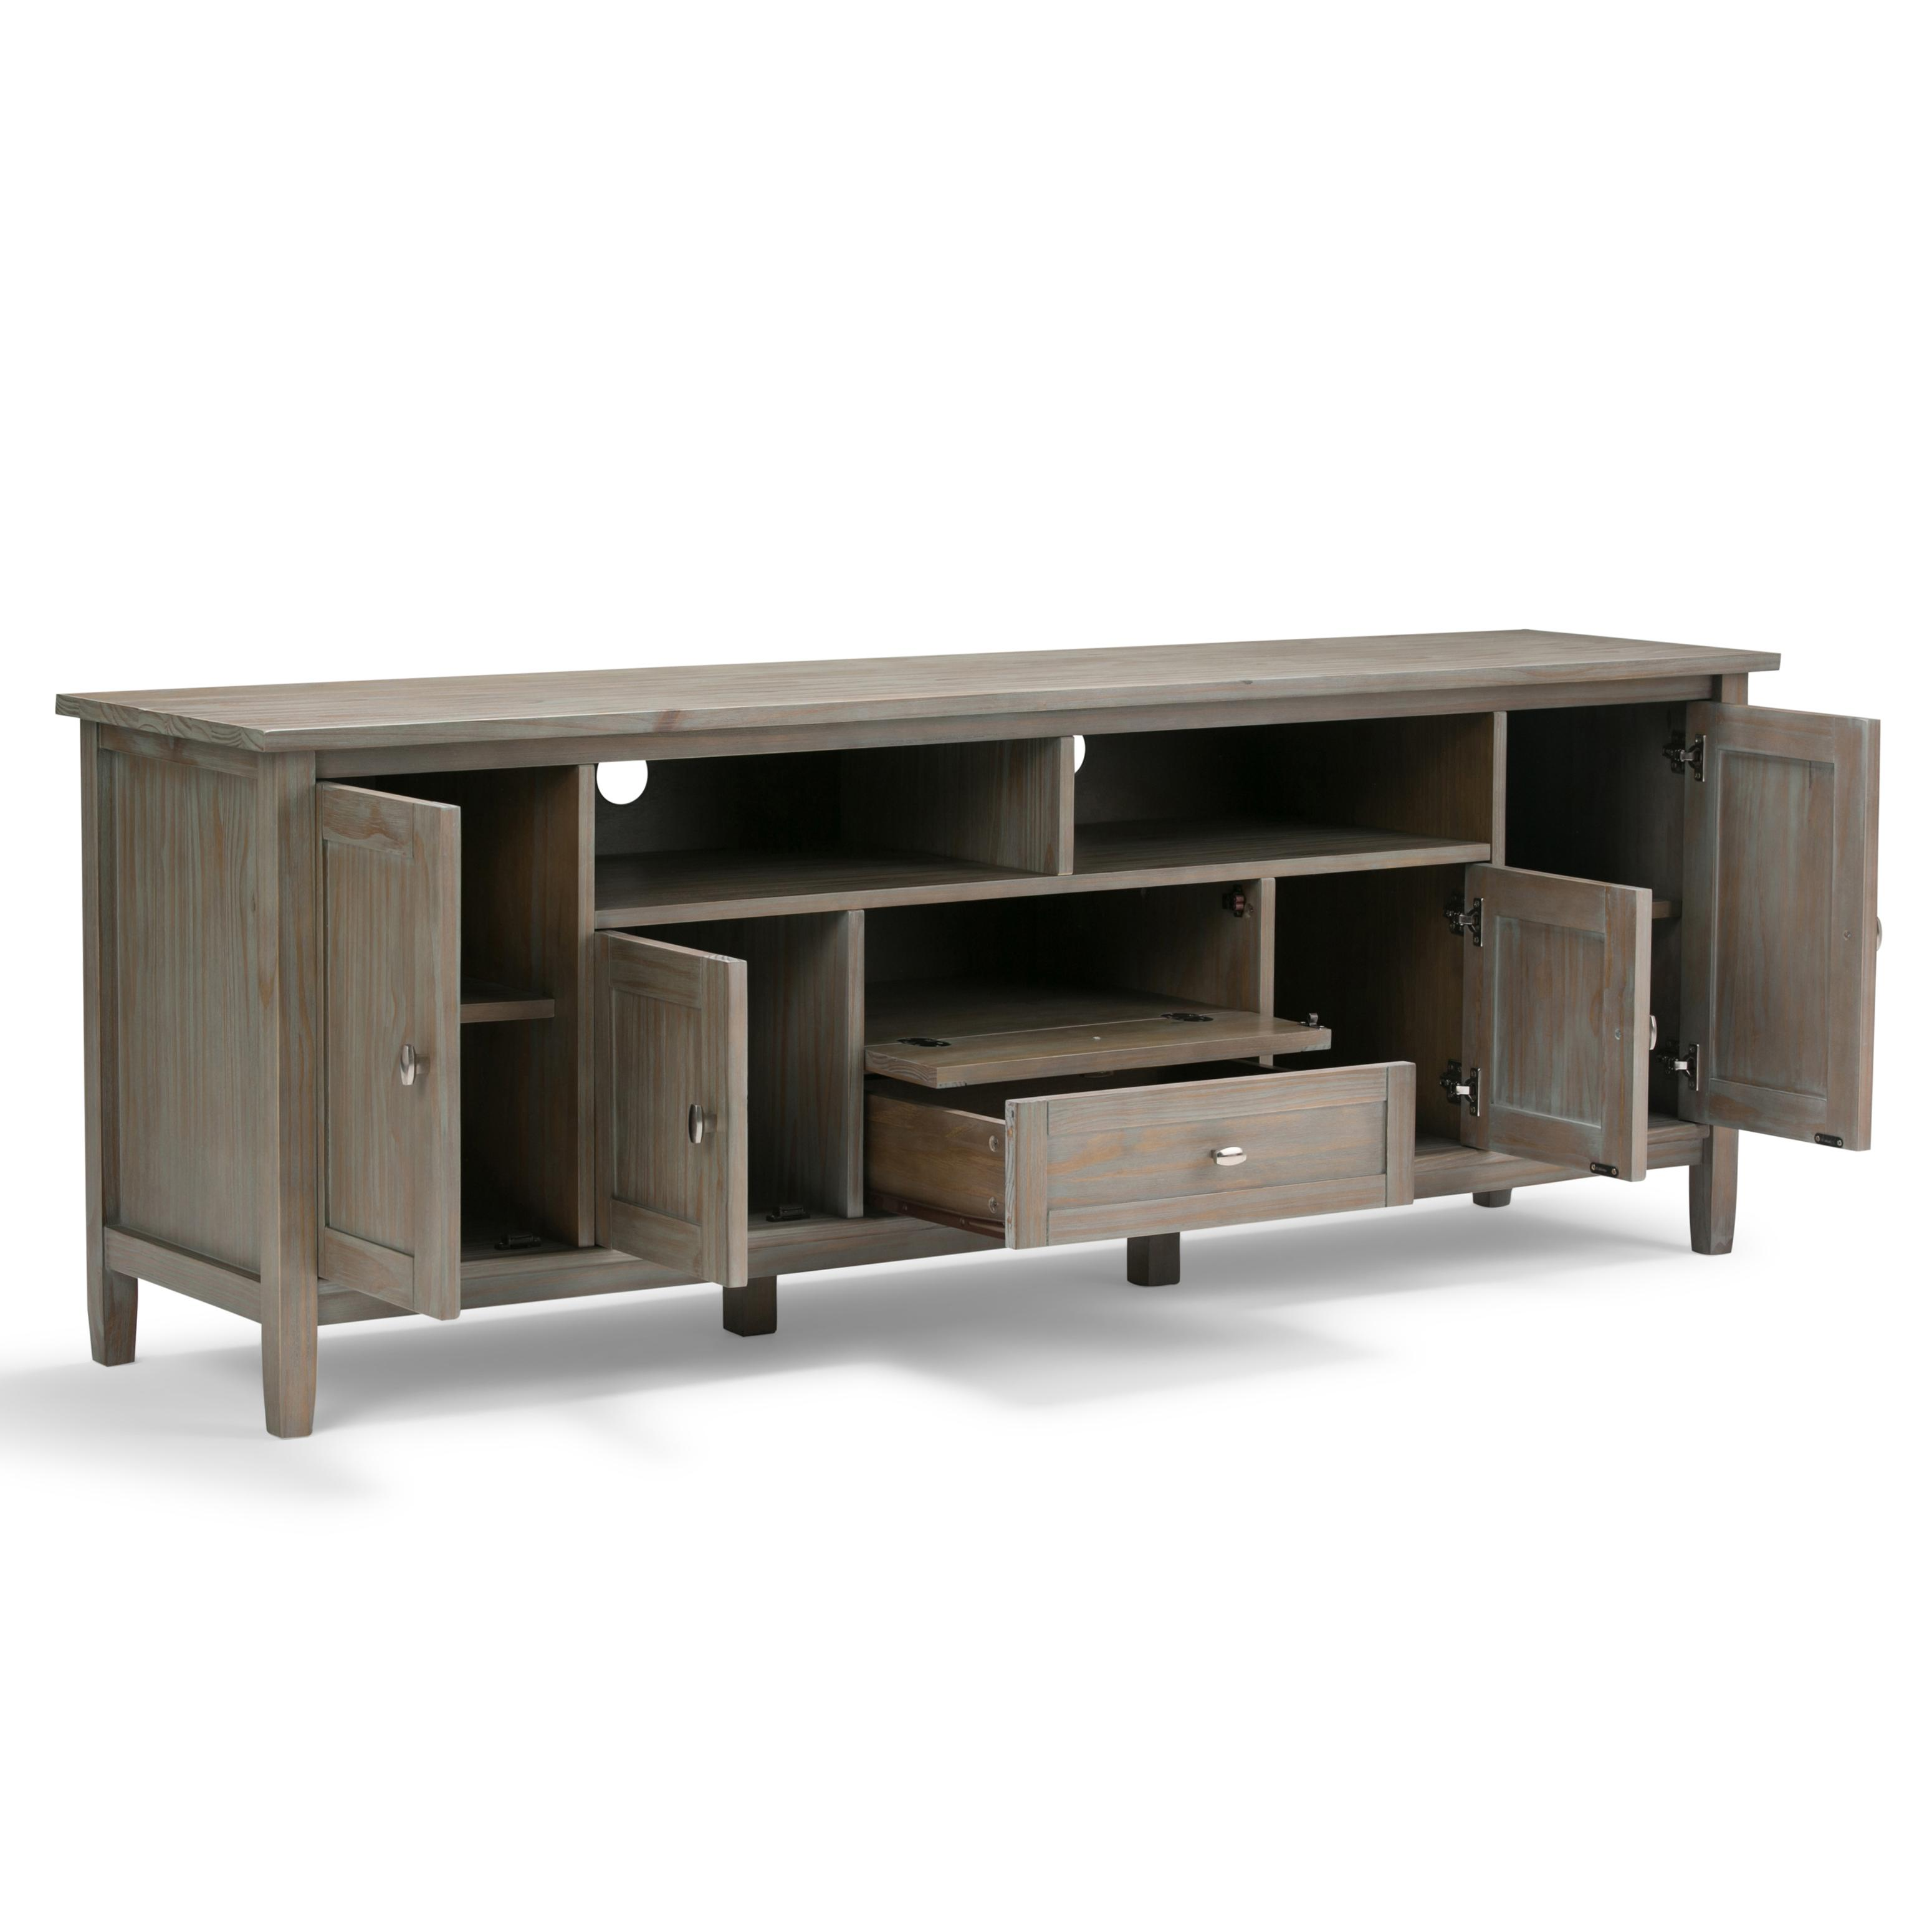 simpli home warm shaker solid wood 72 tv media stand distressed grey kitchen dining. Black Bedroom Furniture Sets. Home Design Ideas